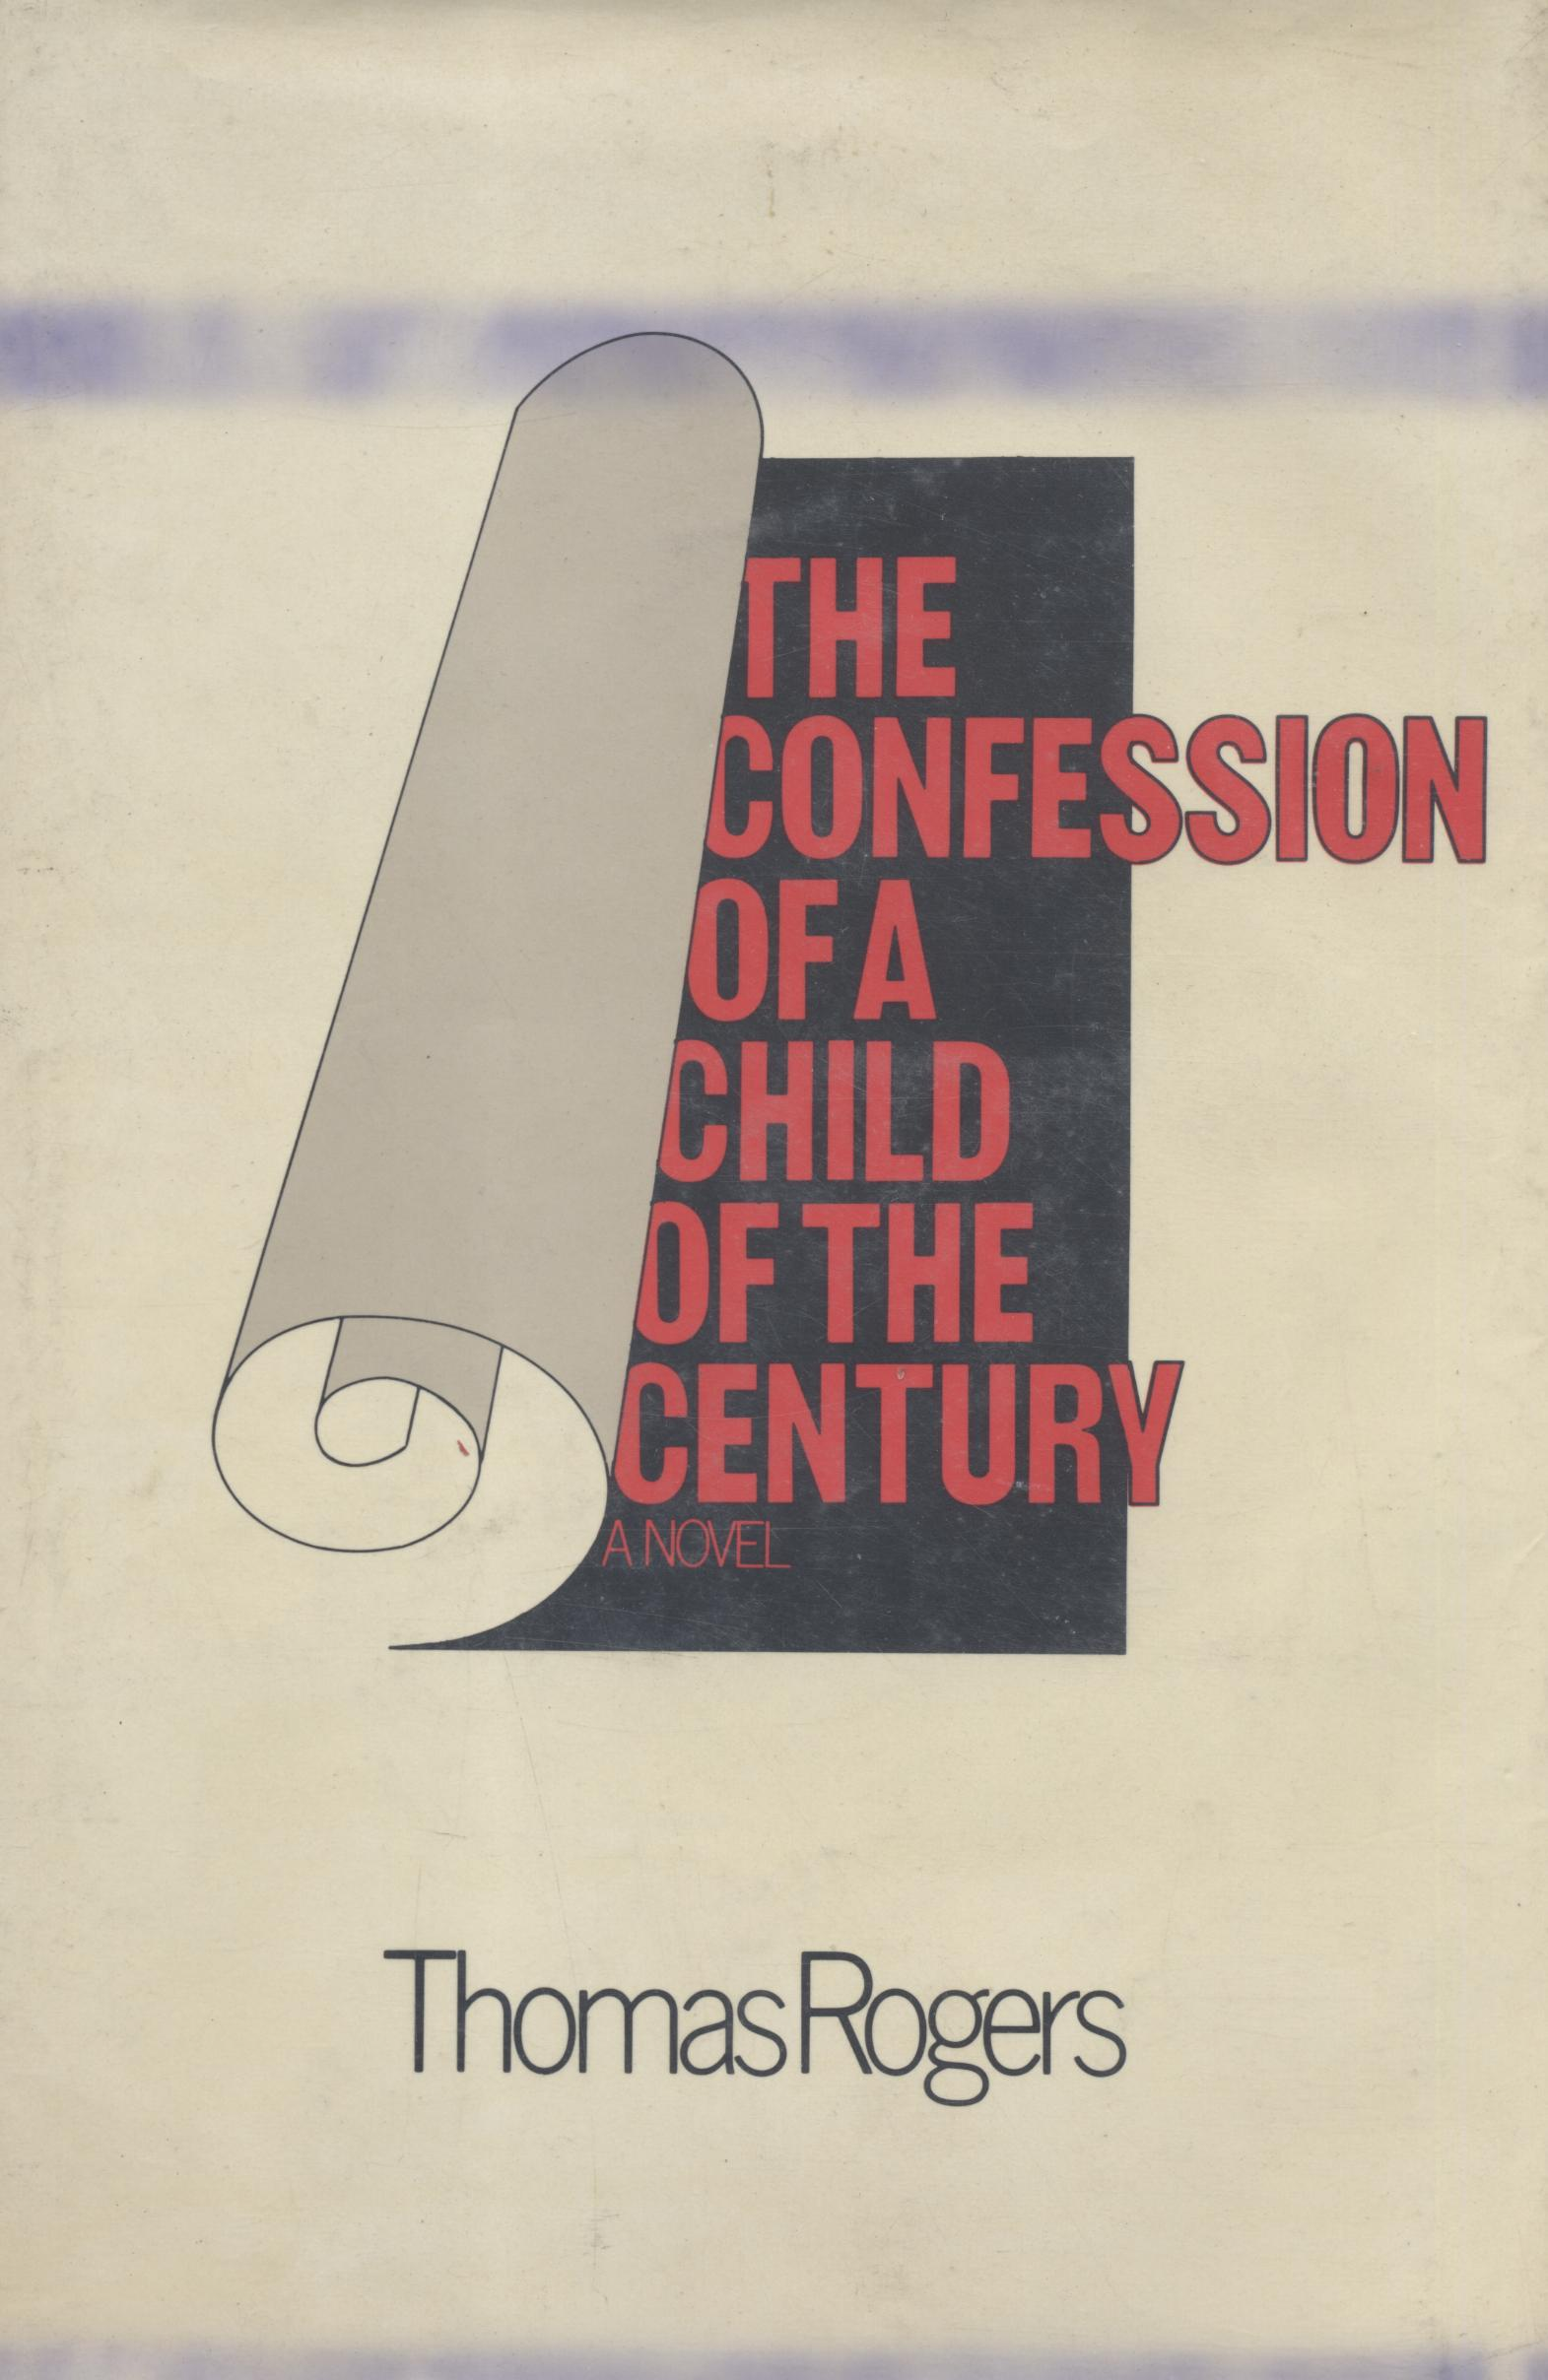 cover of The Confessions of a Child of the Century by Thomas Rogers